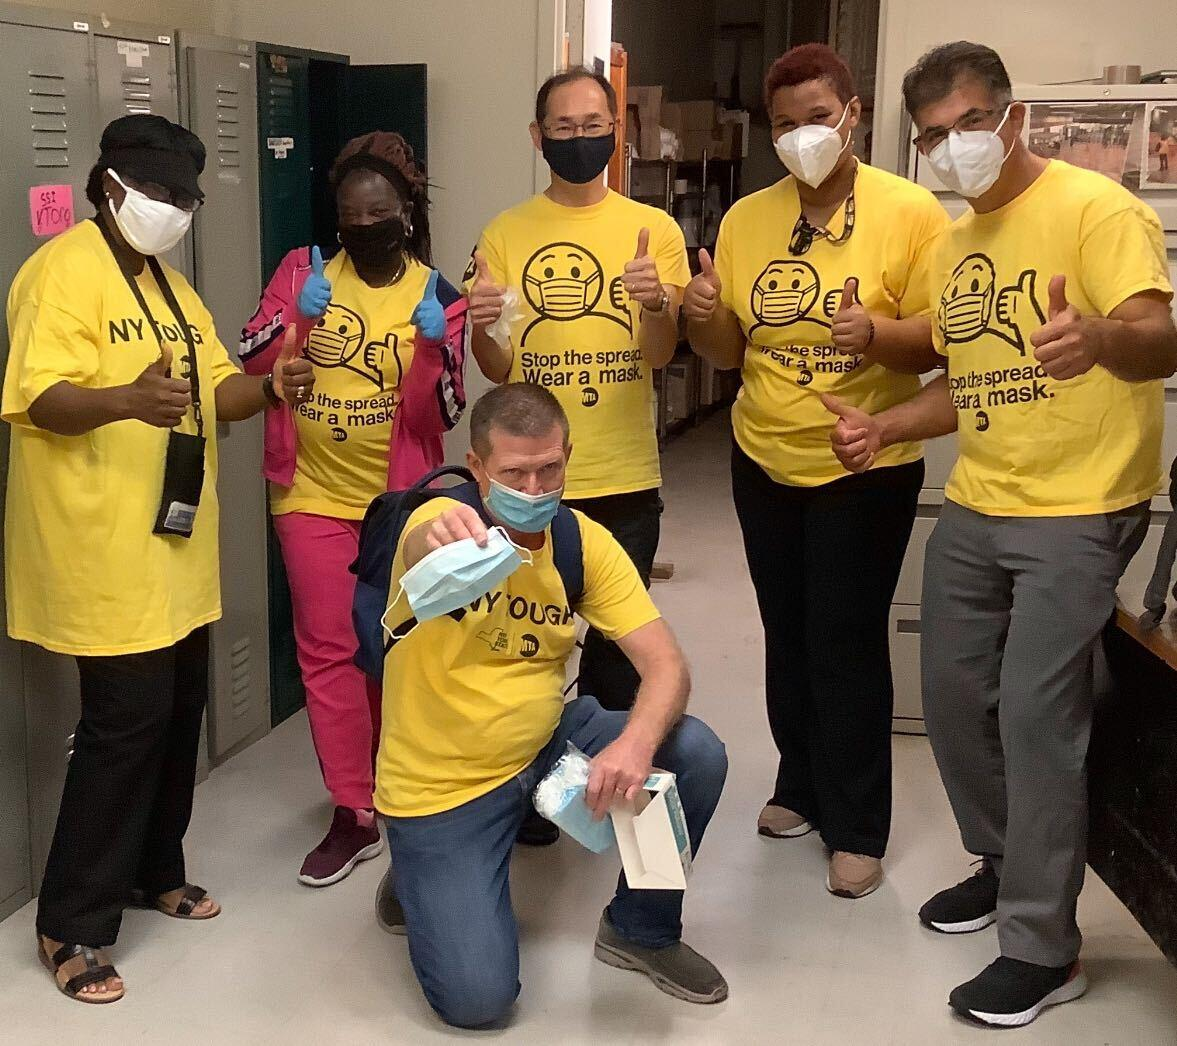 Volunteers in yellow t-shirts and masks giving thumbs up before they head out.